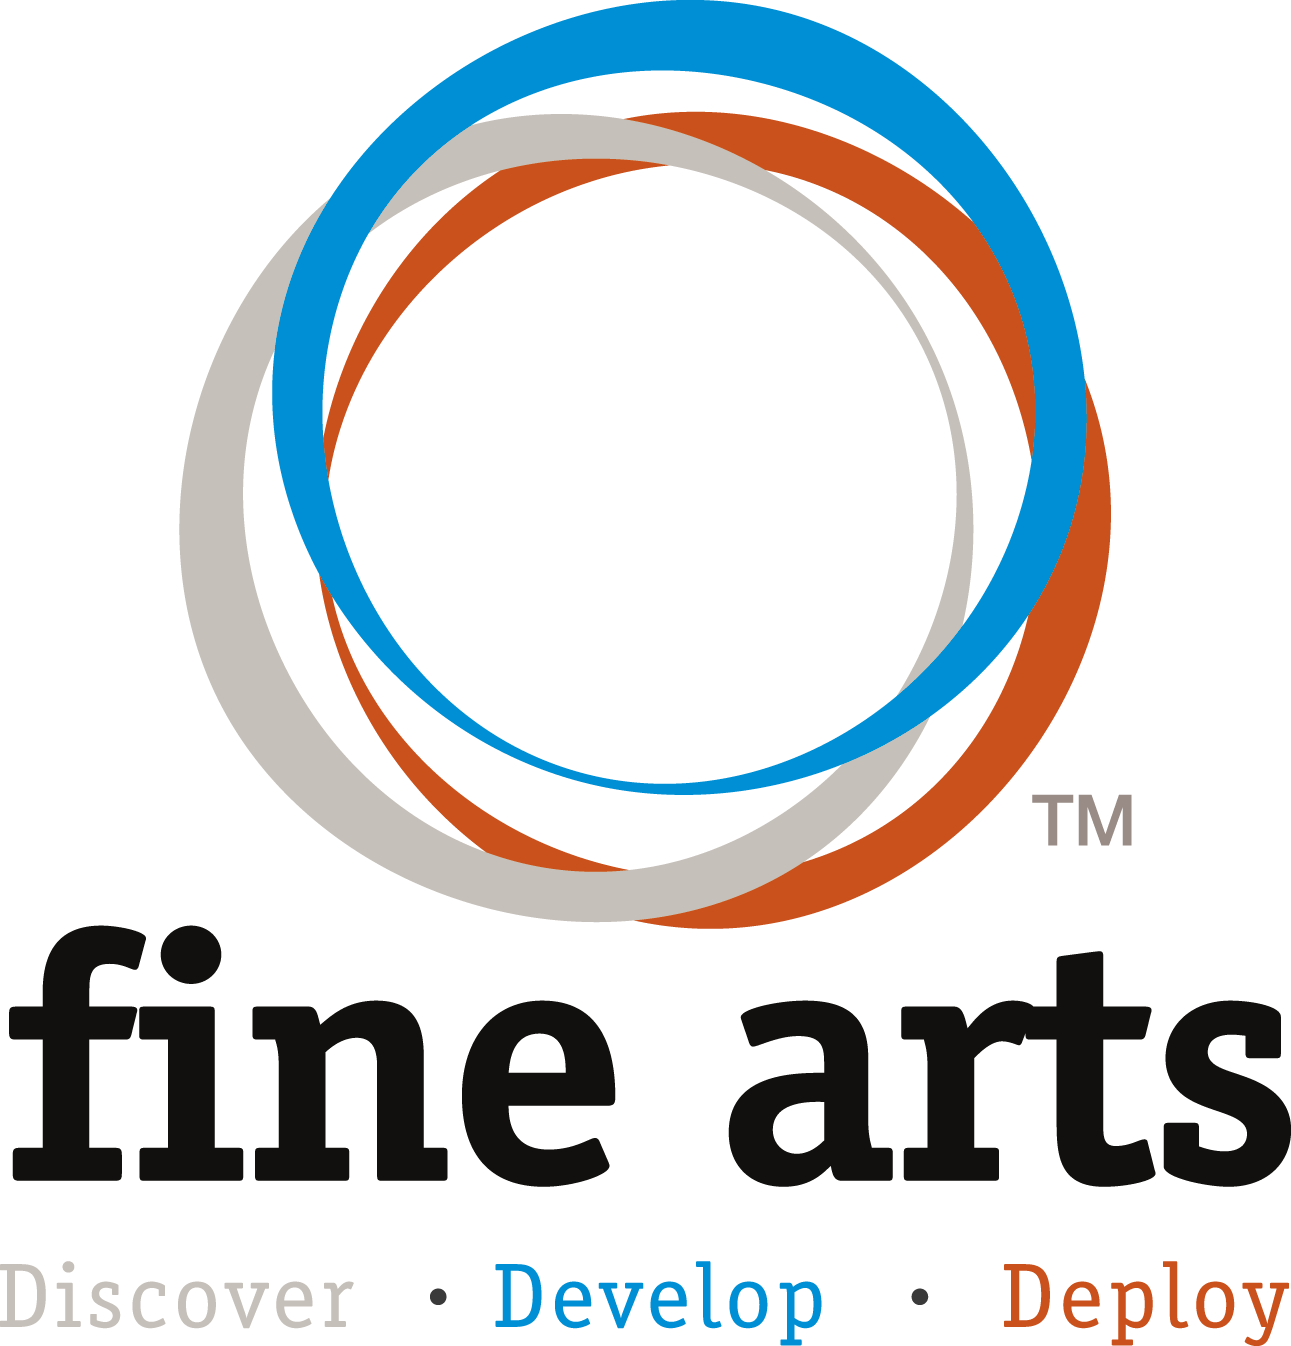 FineArts_logo_color_17_1.png